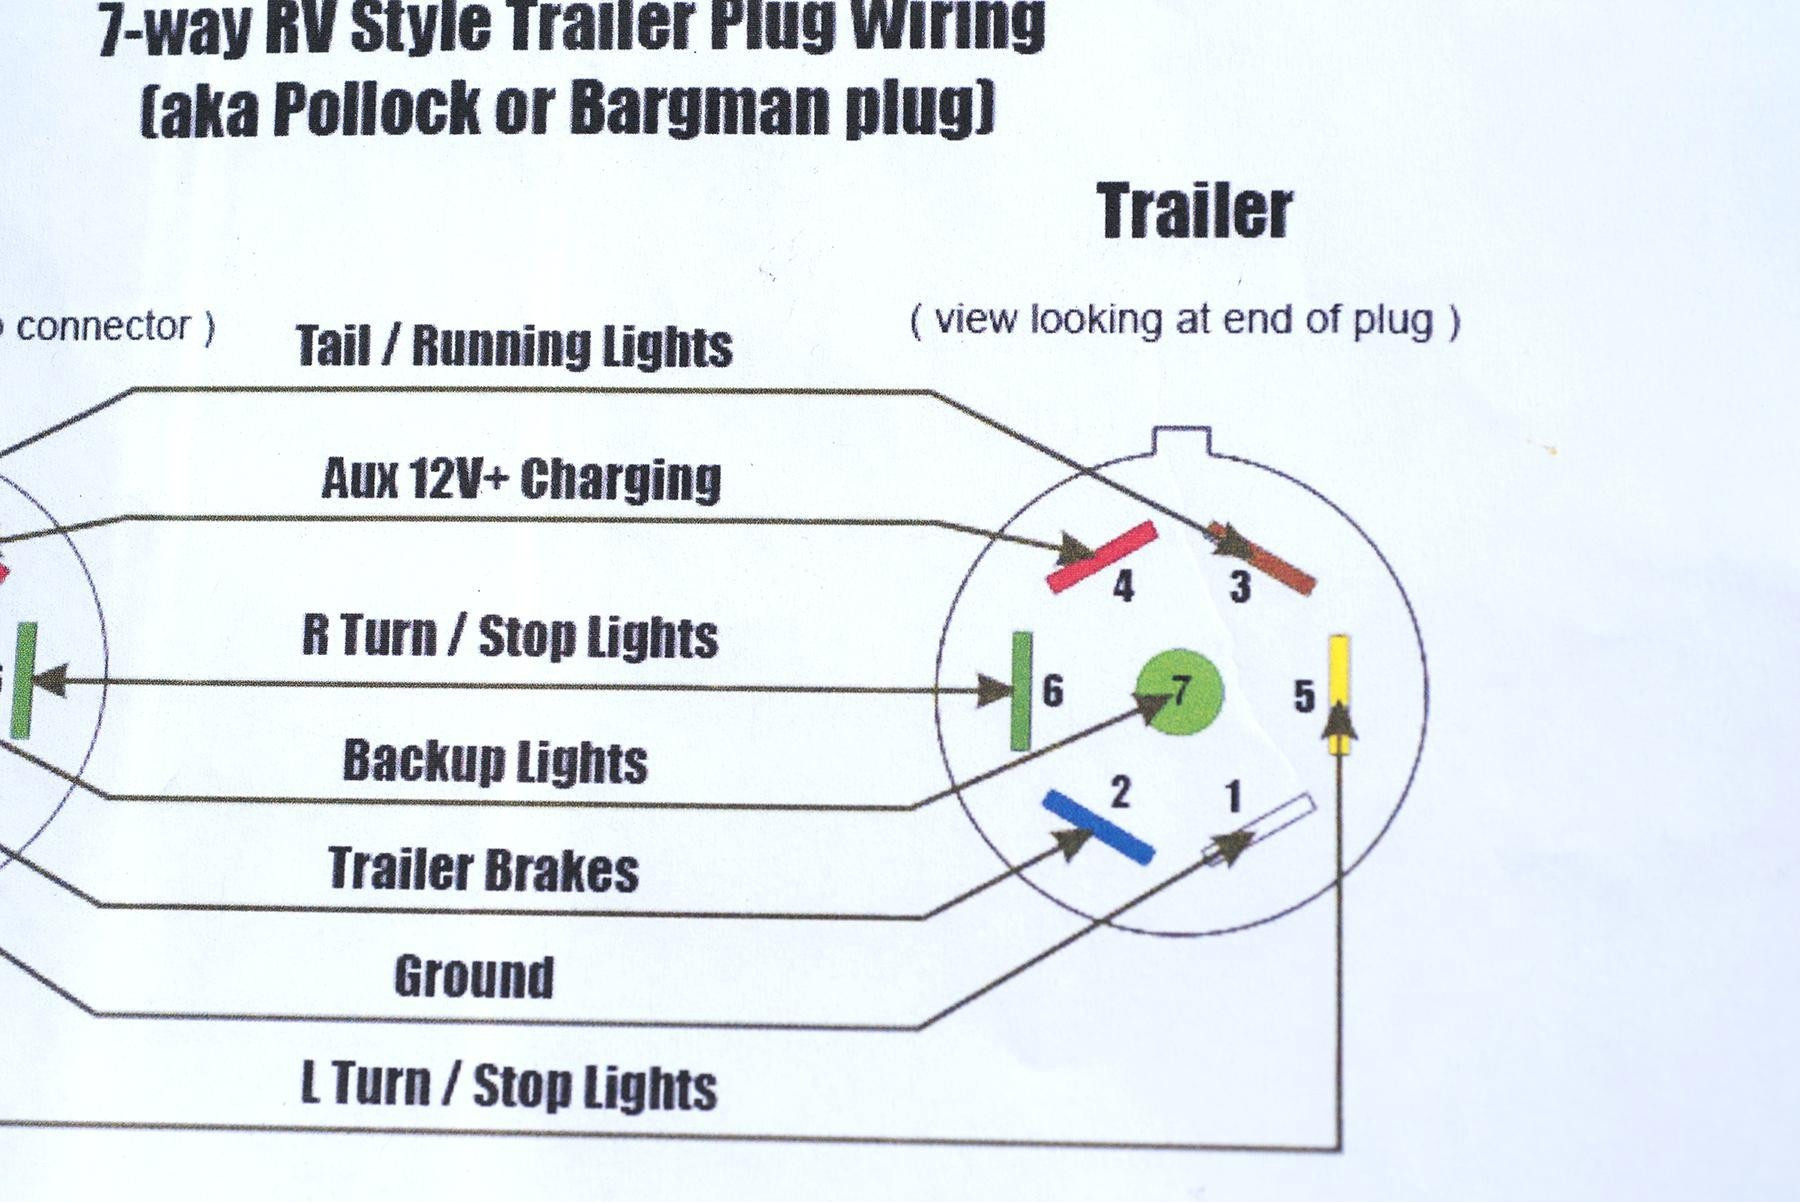 6 Pin Trailer Wiring Code - Data Wiring Diagram Today - 6 Way Trailer Wiring Diagram